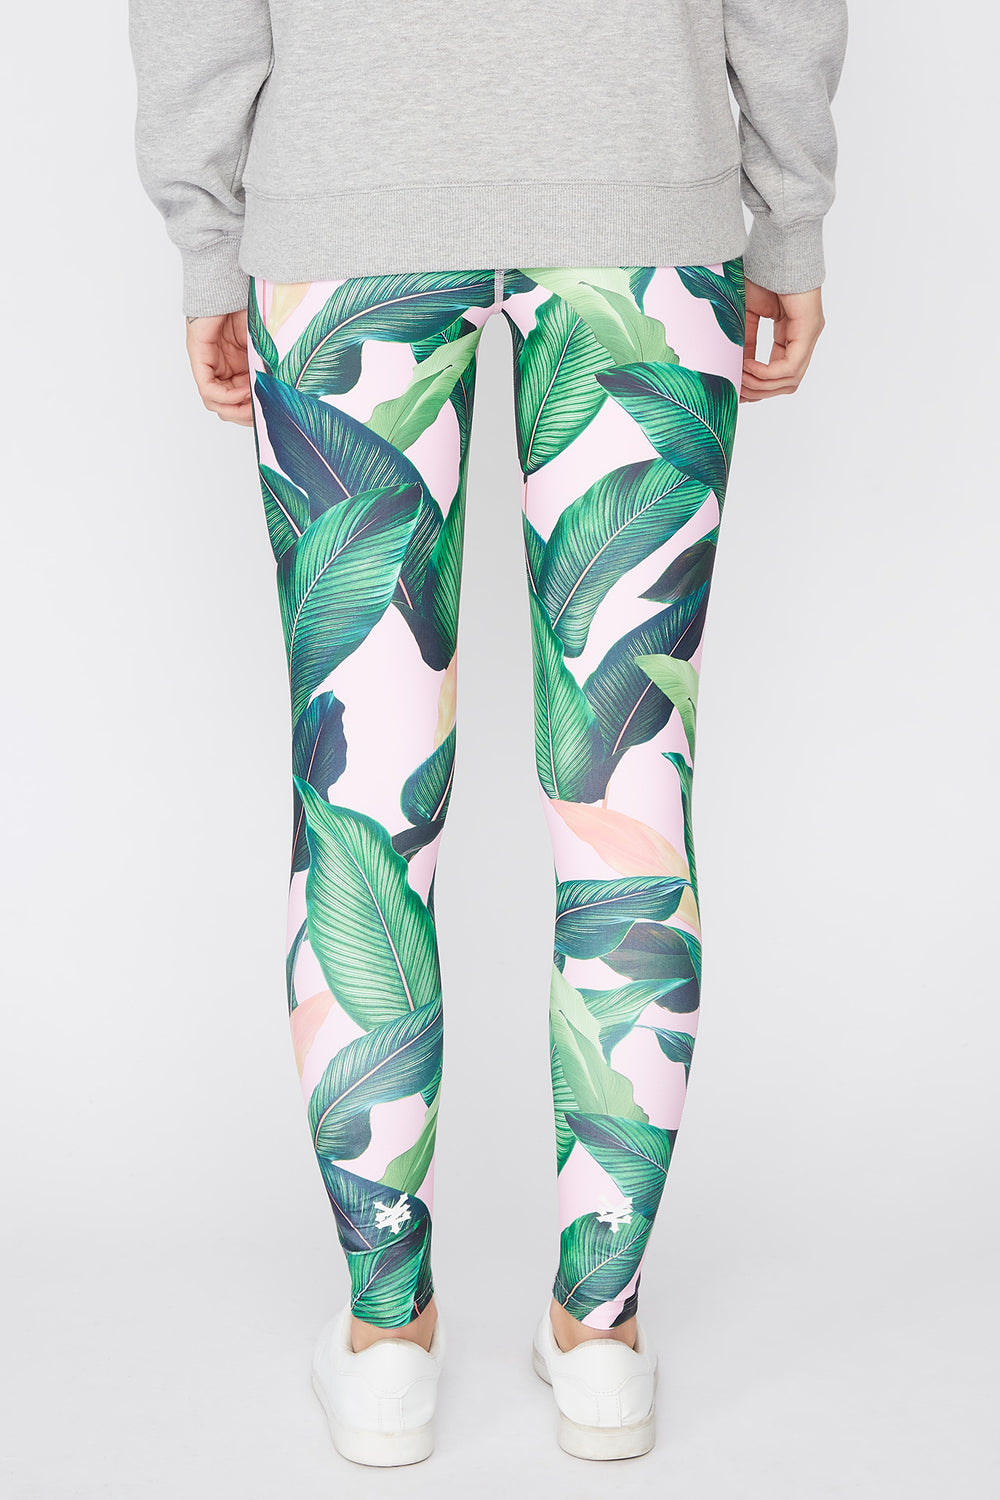 Leggings Imprimé Tropical Zoo York Femme Multi